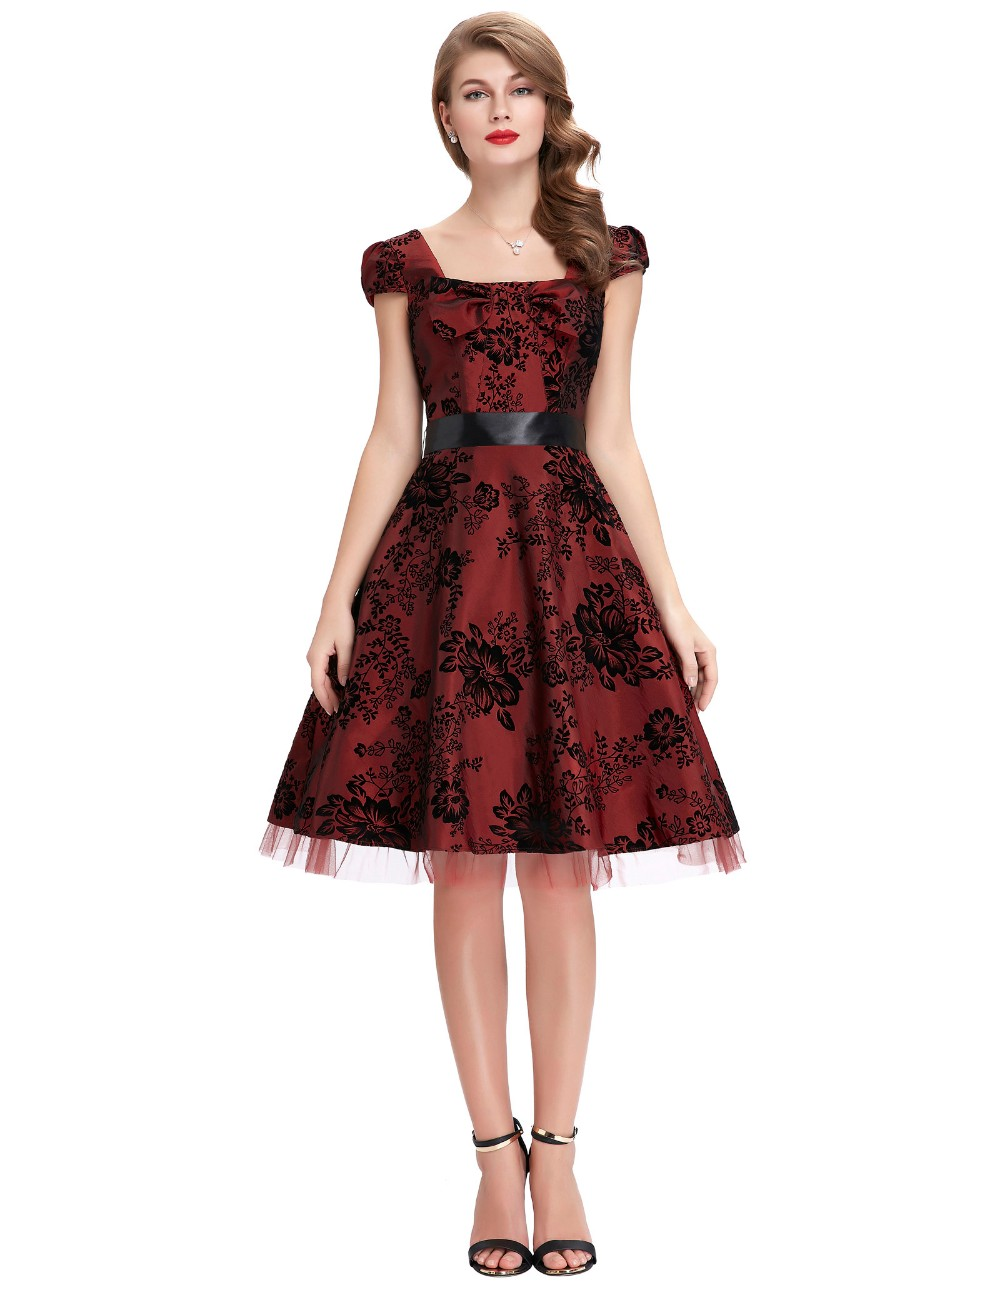 daf84d4770930 Belle Poque Womens Robe Vintage London Palace Dresses 2017 Pin Up ...